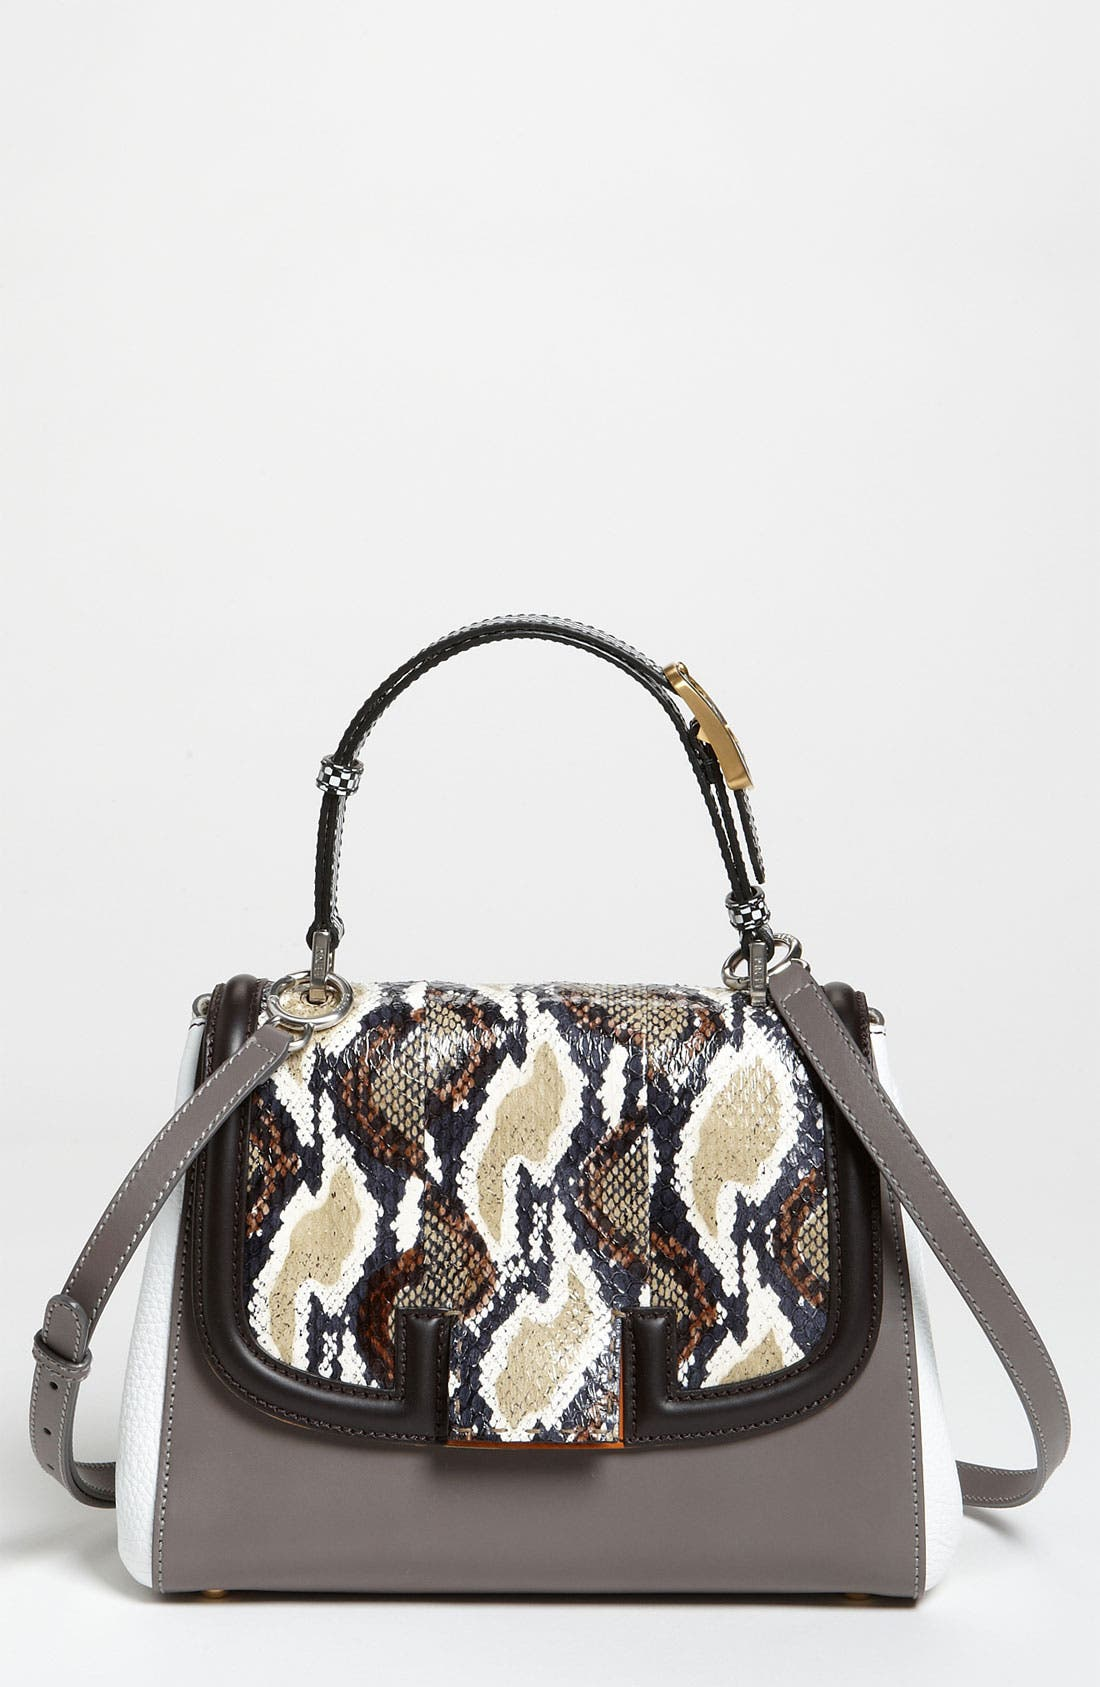 Main Image - Fendi 'Silvana Elaphe Fantasy' Leather & Genuine Snakeskin Satchel